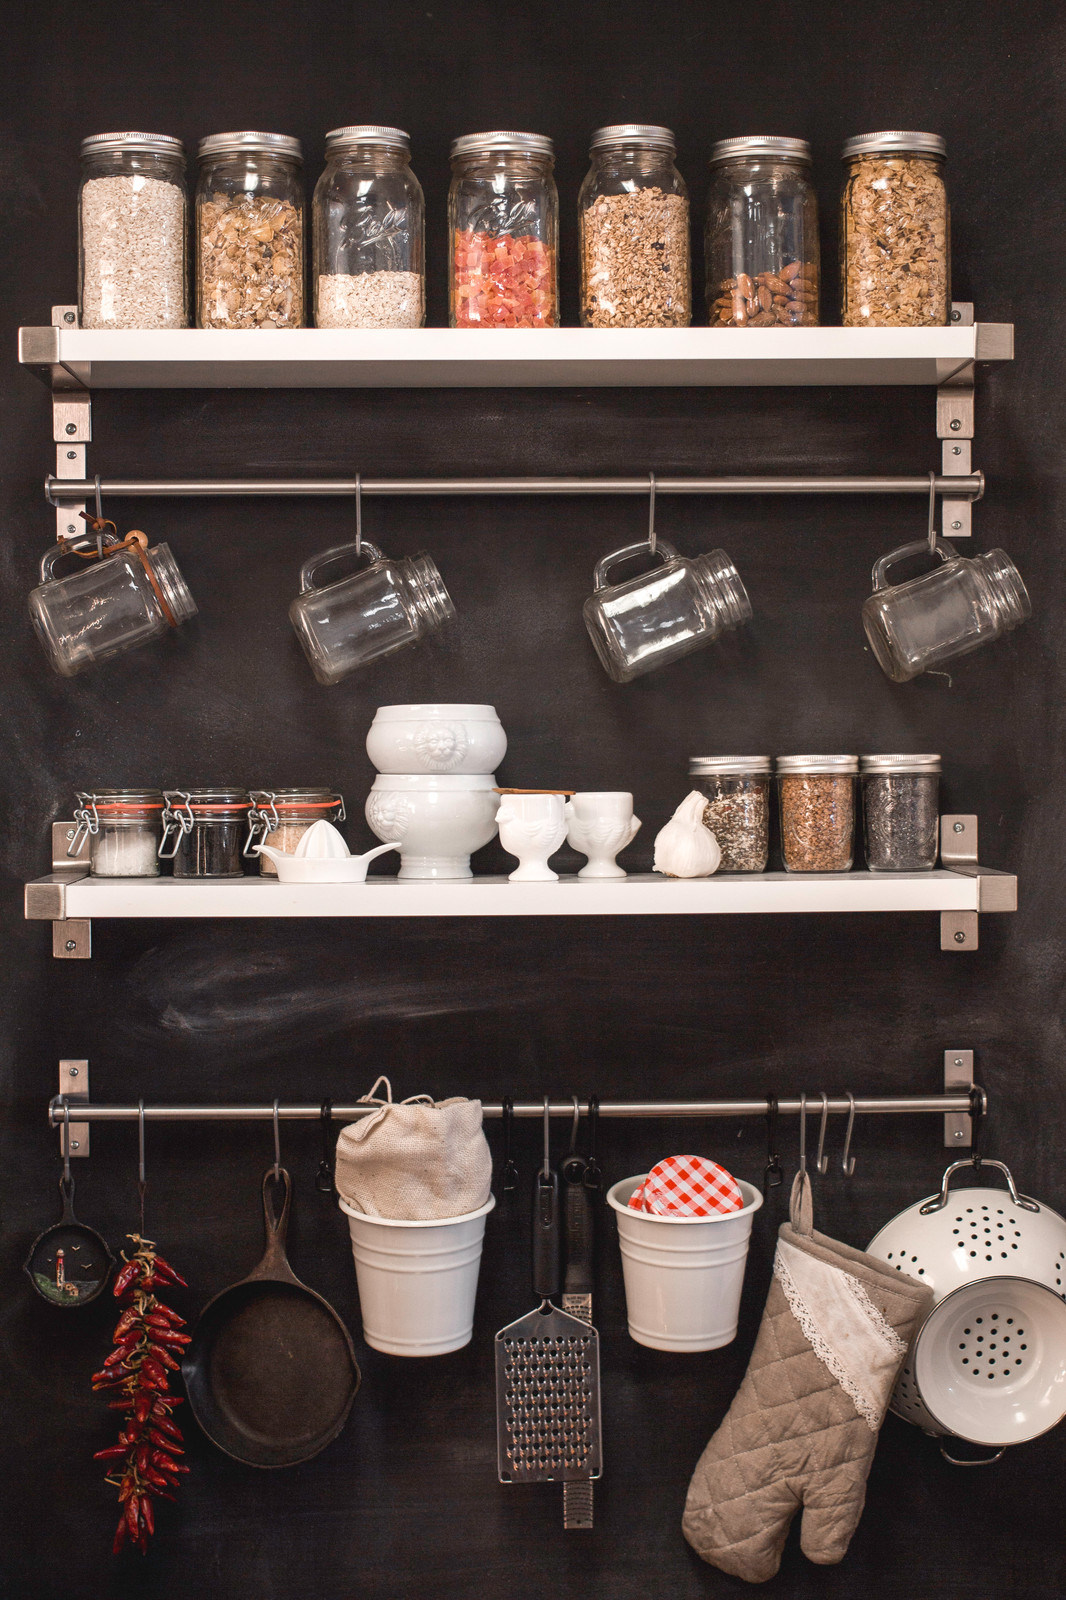 Zero Waste Kitchen Shelving